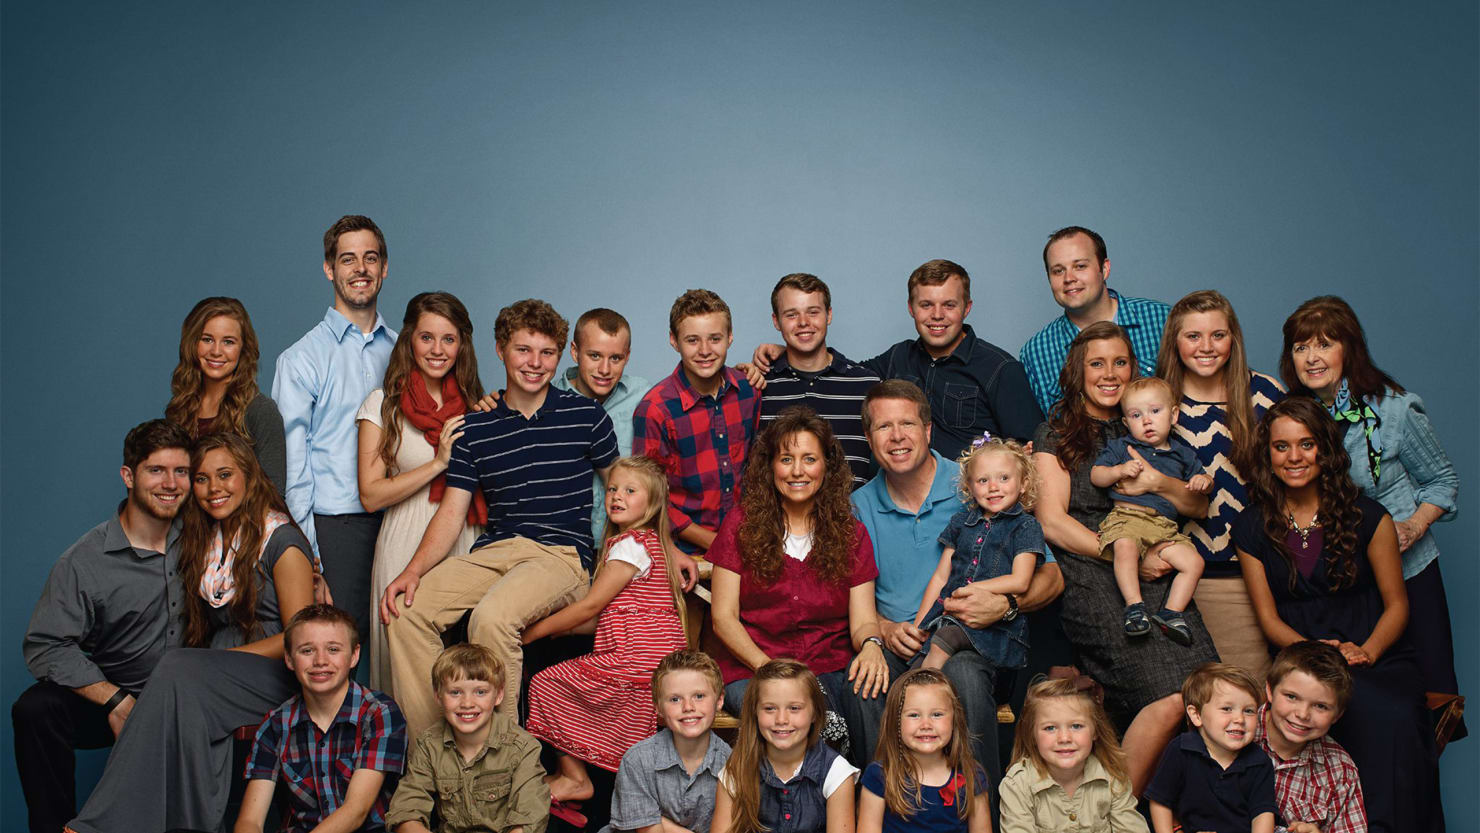 the duggars are broke or just greedy as hell